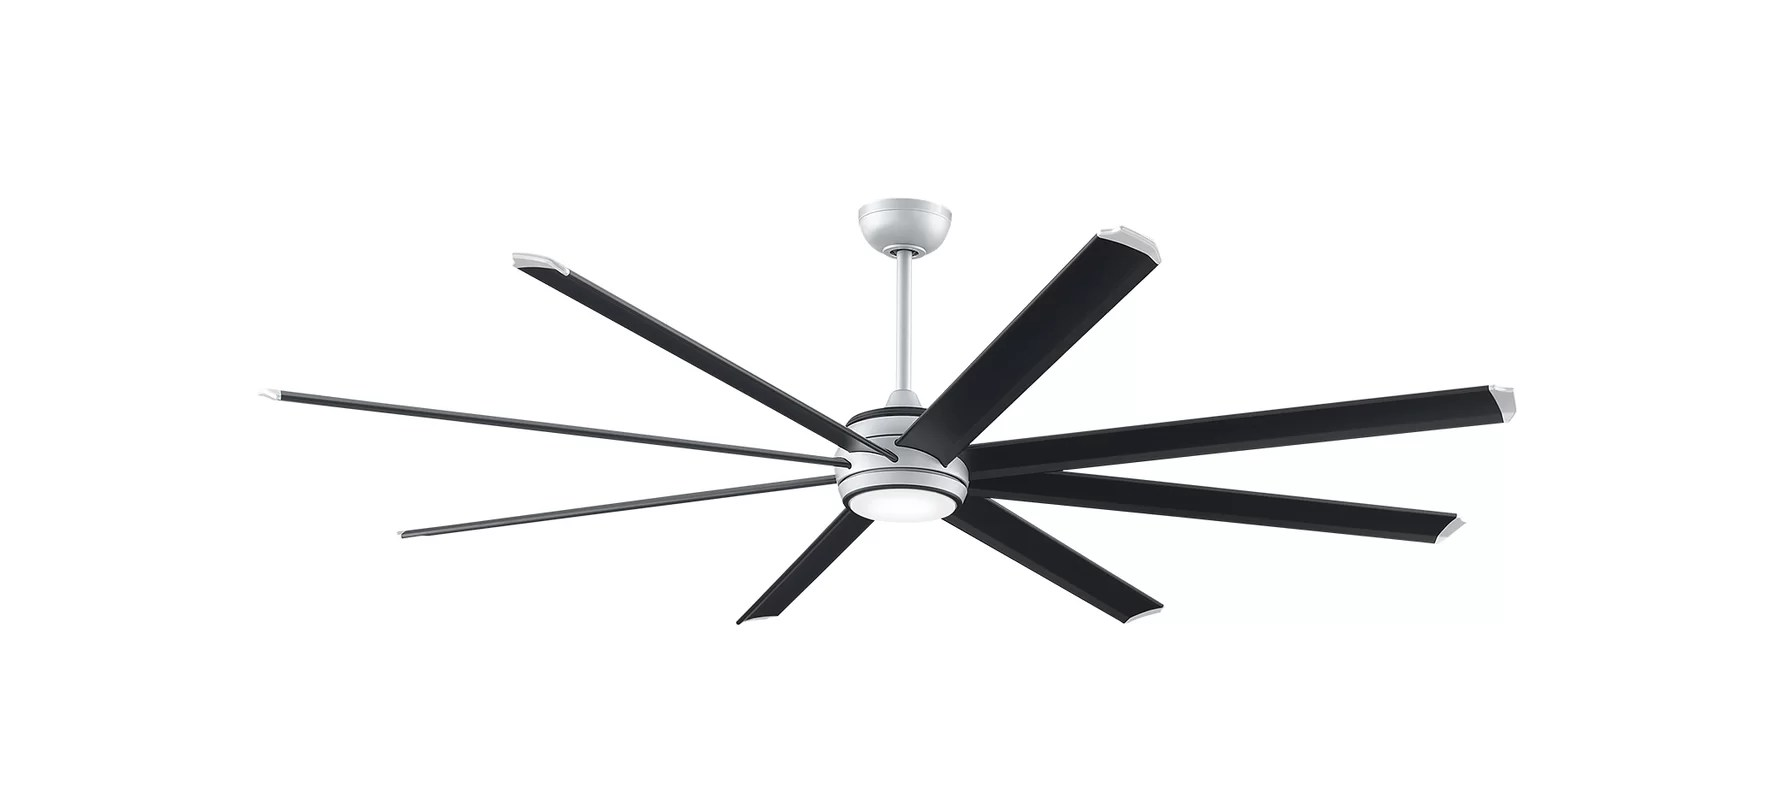 Fanimation 84 Stellar Outdoor Ceiling Fan Motor With Remote Amp Reviews